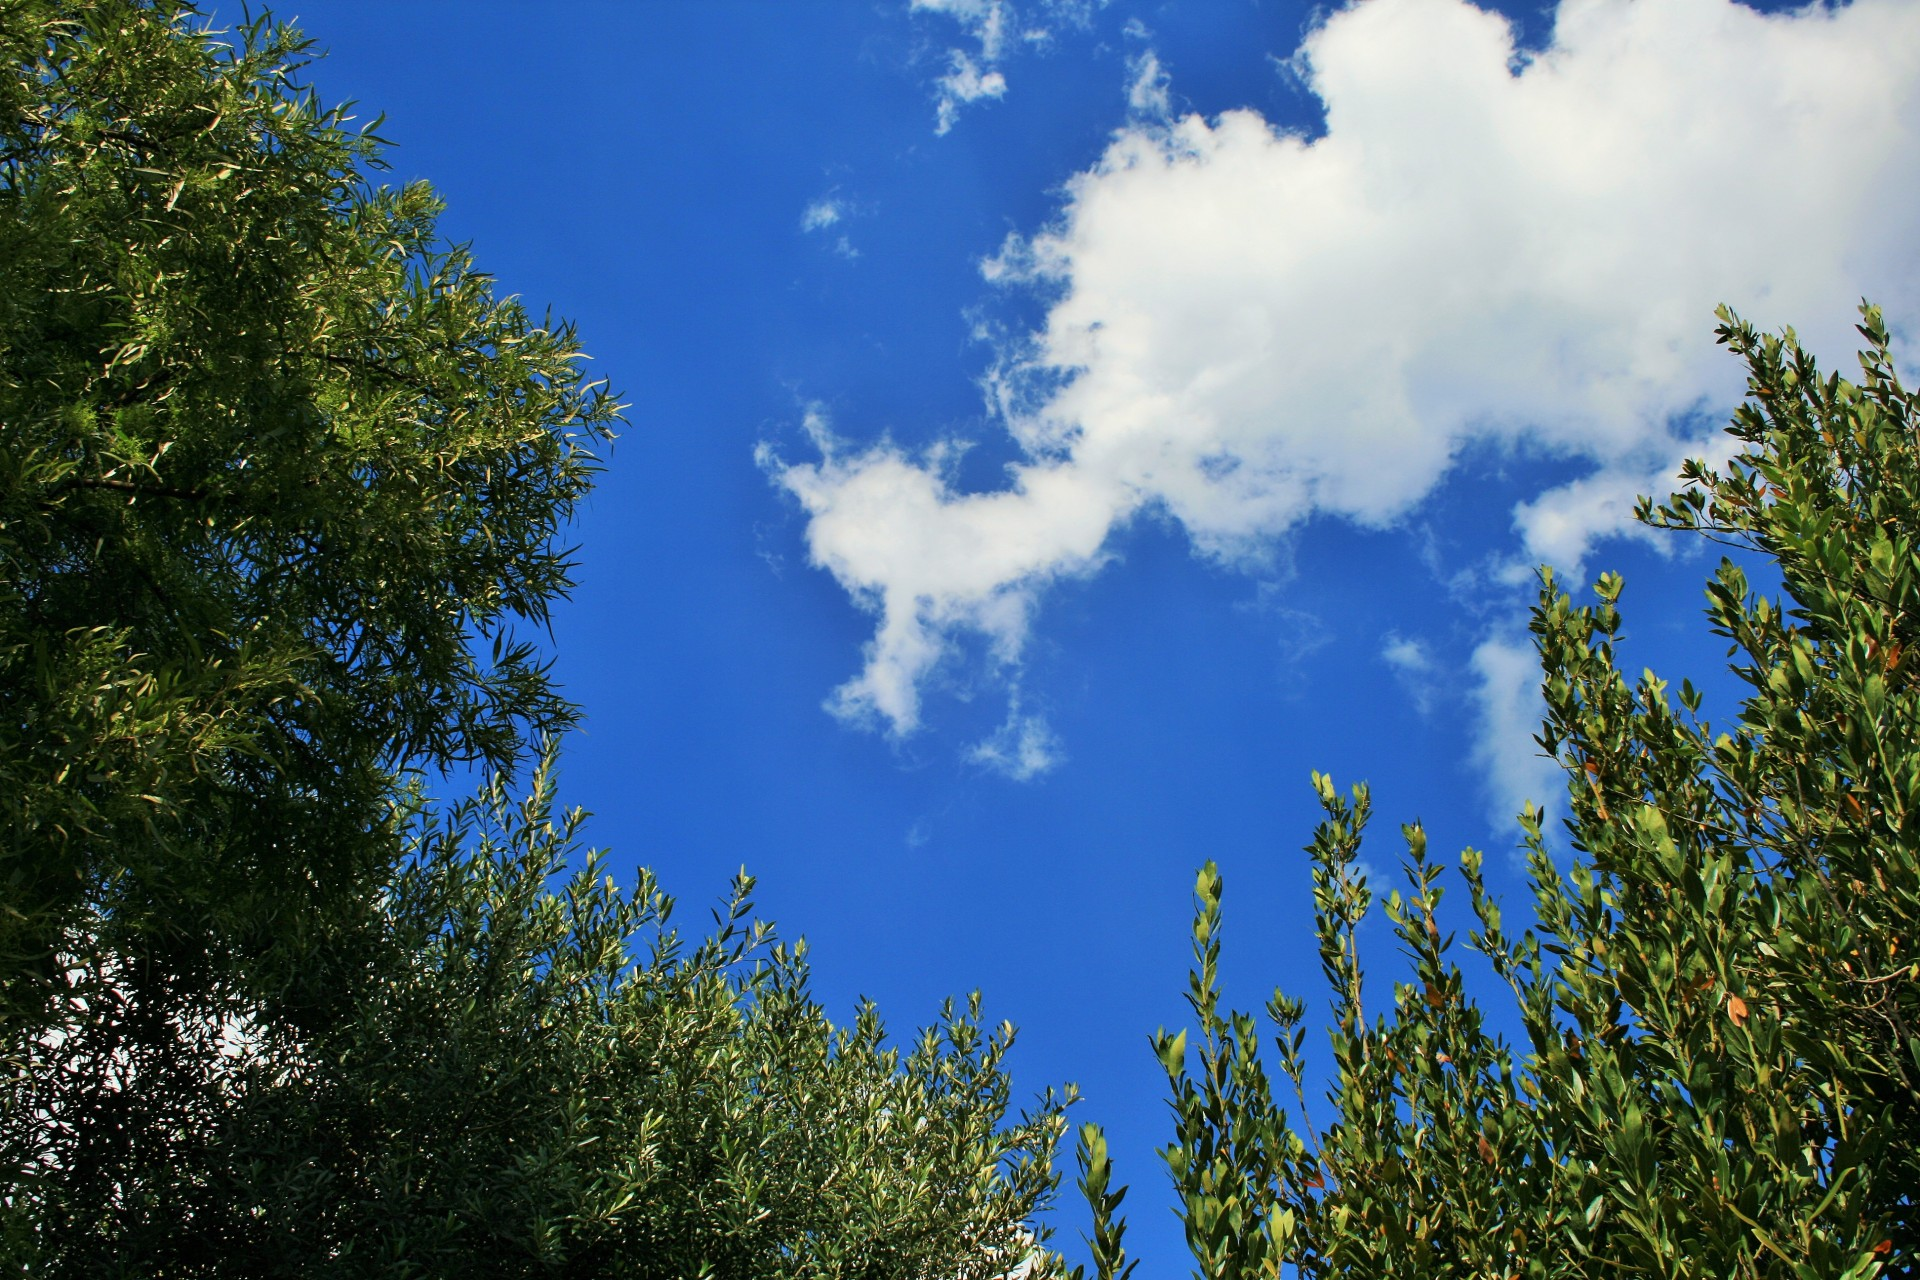 Tree Tops With Sky And Clouds Free Stock Photo - Public Domain Pictures